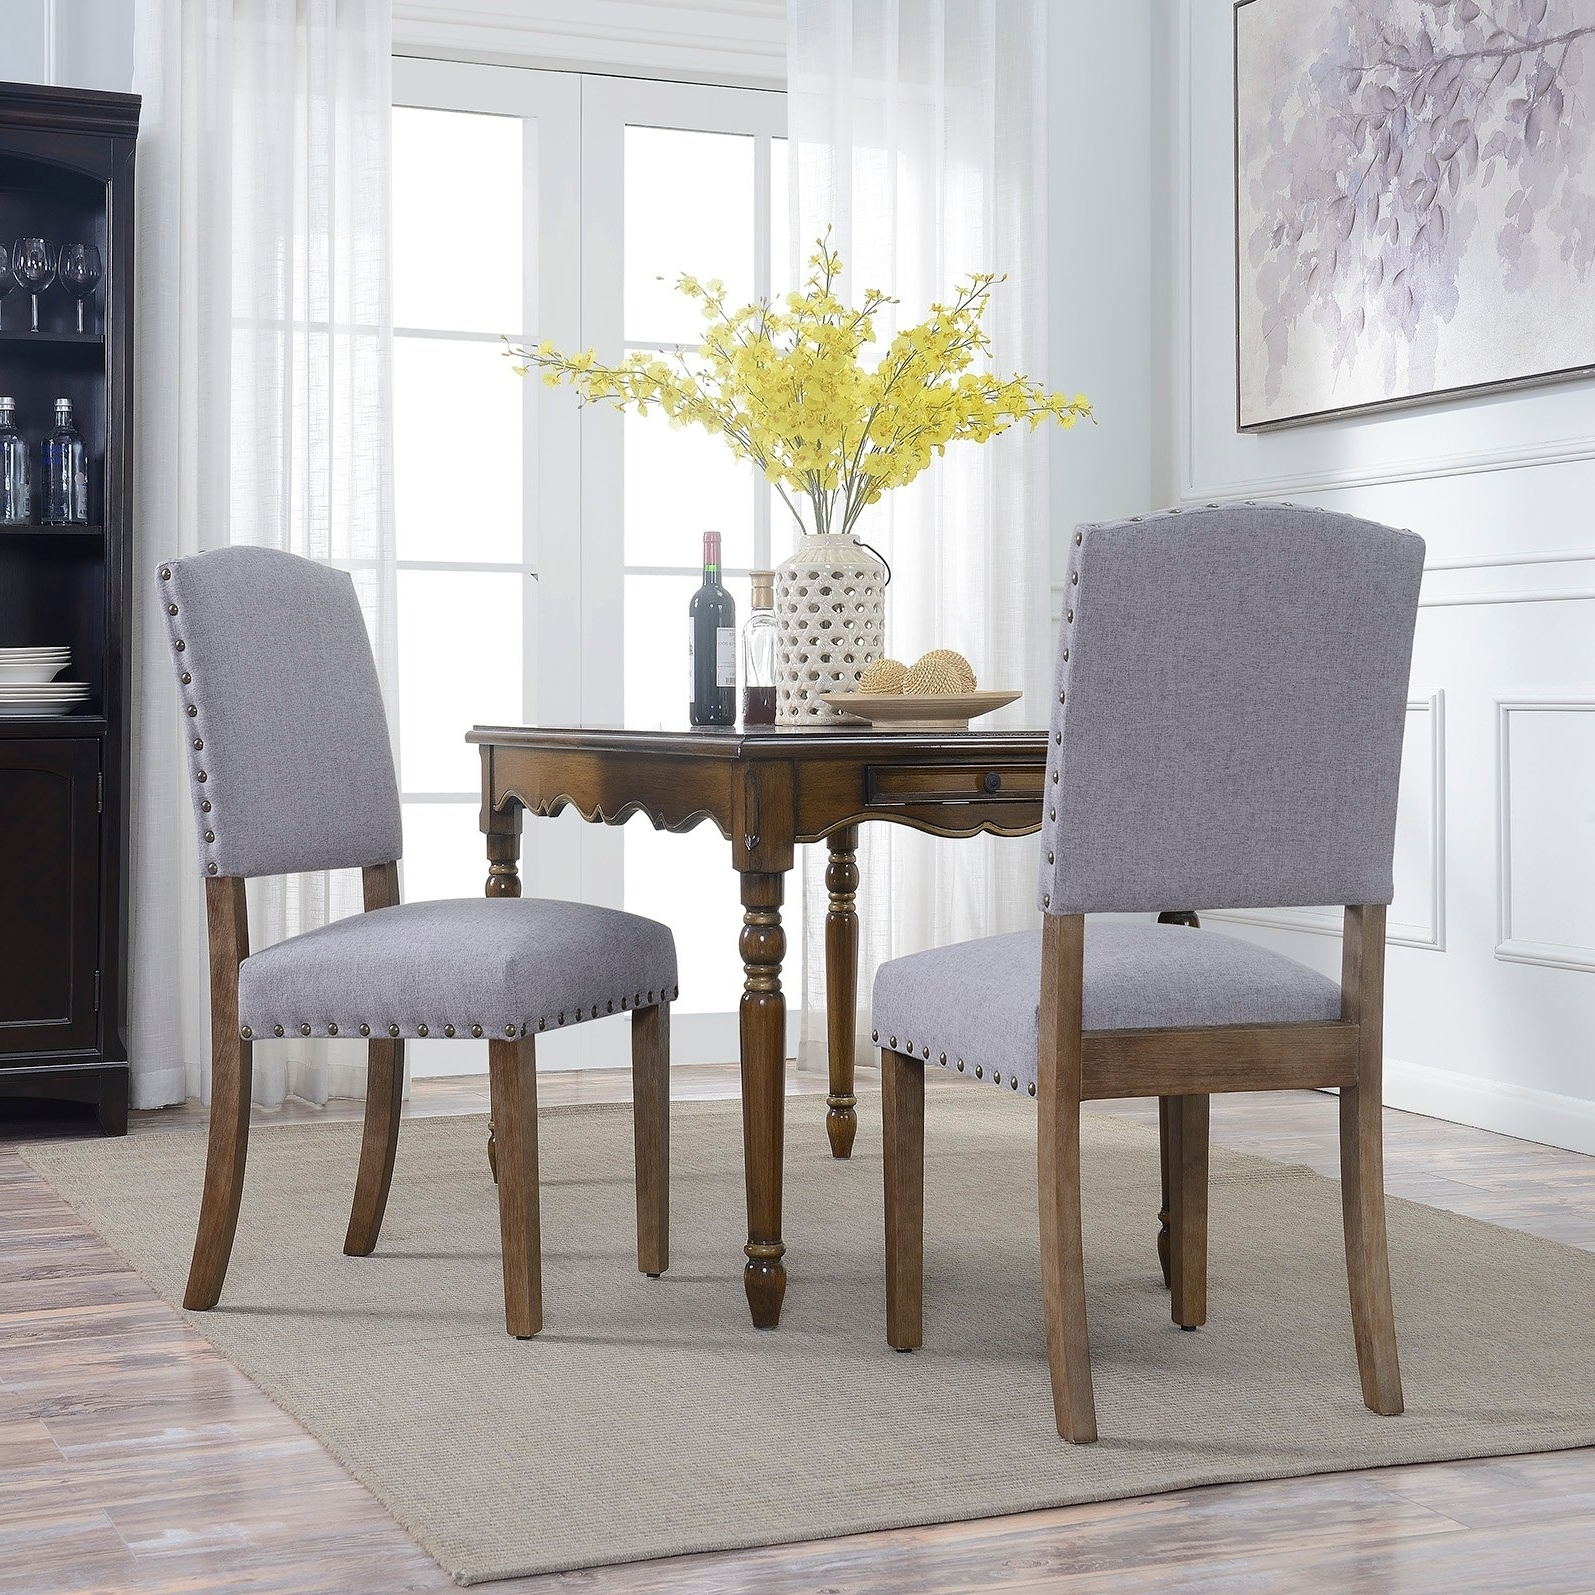 Widely Used Caira Black 7 Piece Dining Sets With Upholstered Side Chairs Regarding Shop Belleze Contemporary Classic Dining Chair Set Of (2) Linen (View 23 of 25)